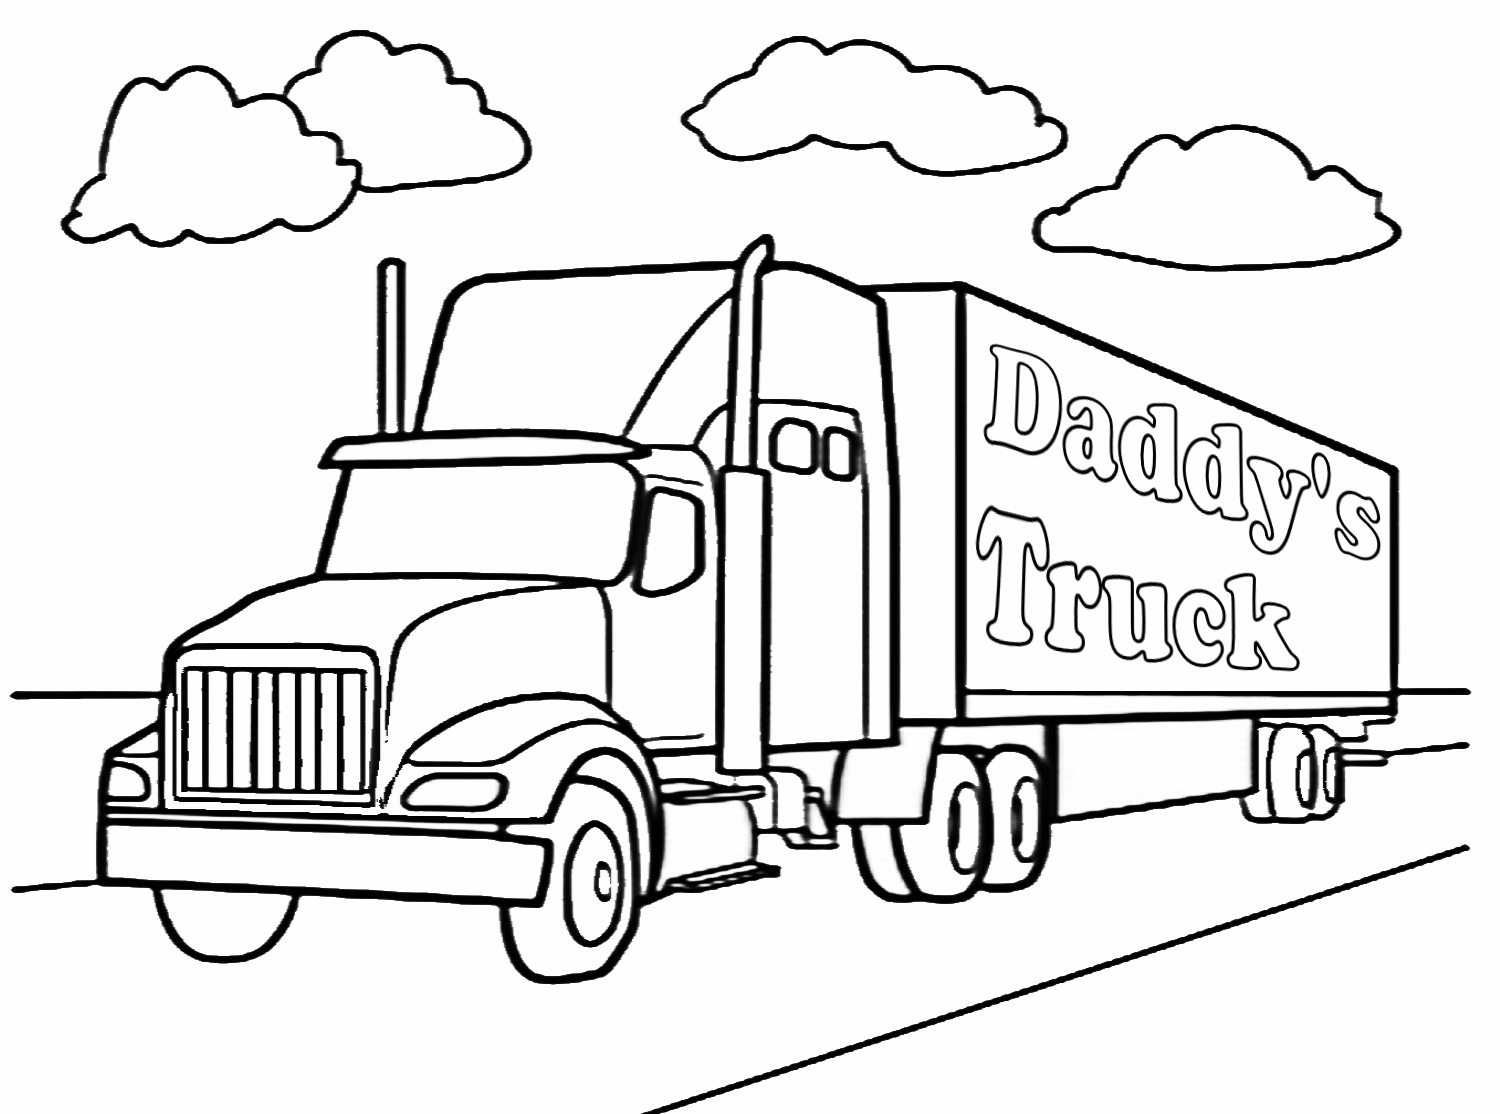 Truck Coloring Pages Complete Semi Truck Coloring Pages 5550 At Neuhne